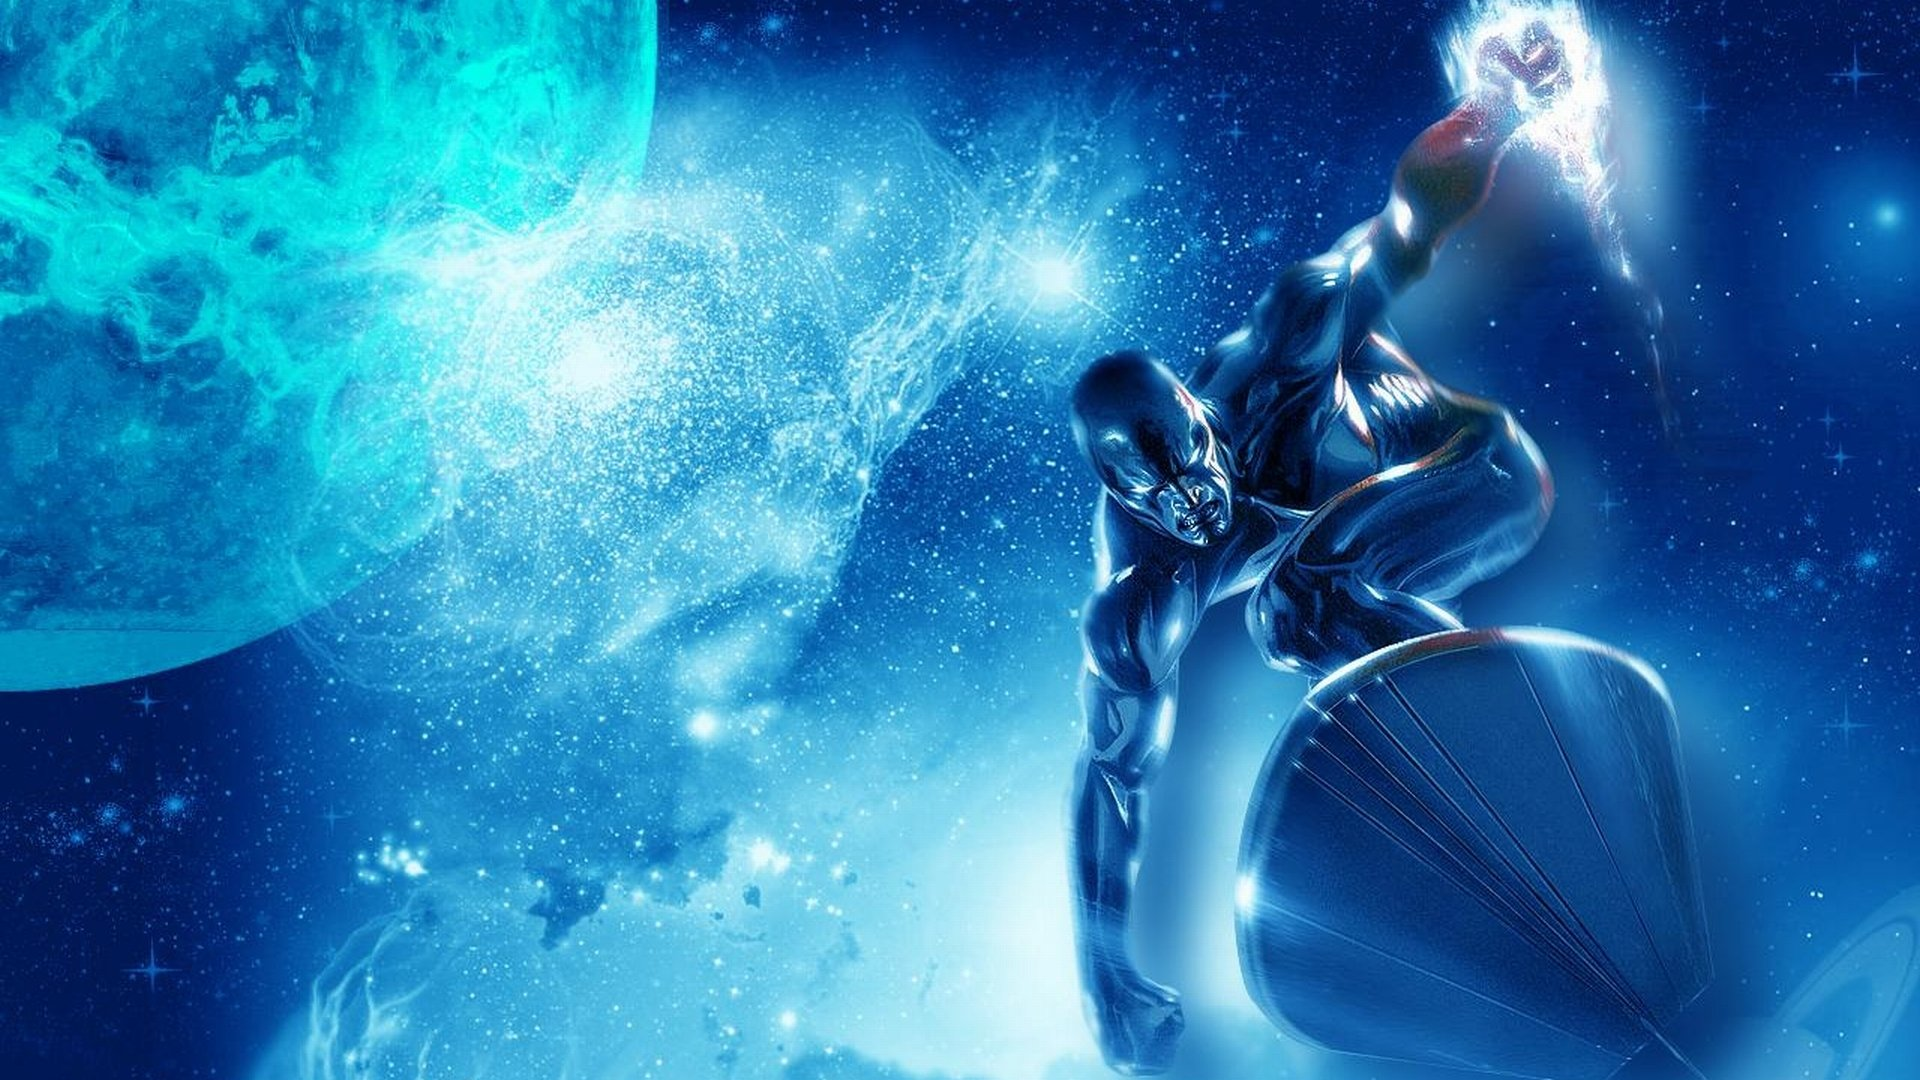 61 Silver Surfer Hd Wallpapers Background Images Wallpaper Abyss